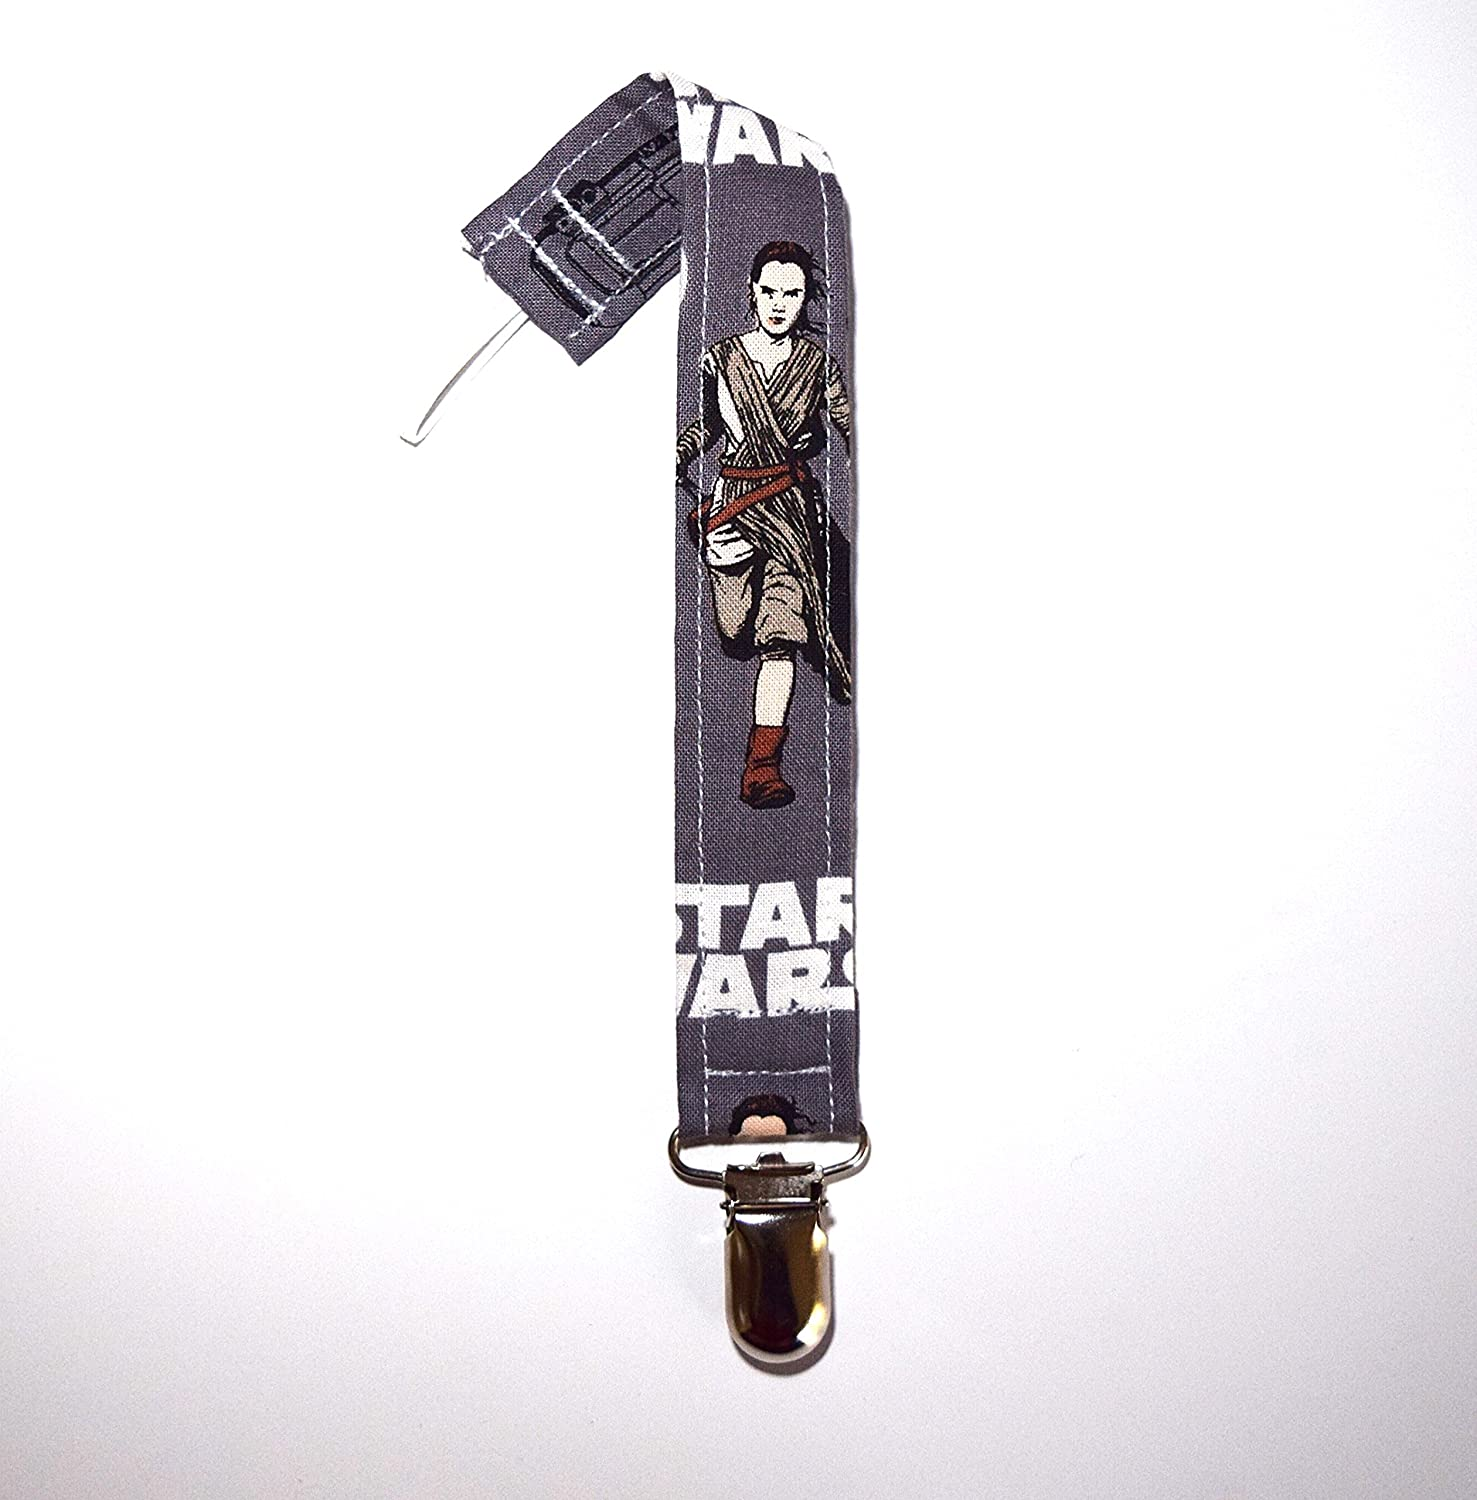 Star Wars Grey Baby Pacifier Clip Soothie Clip Binky clip Pacifier Holder Universal Pacifier Clip